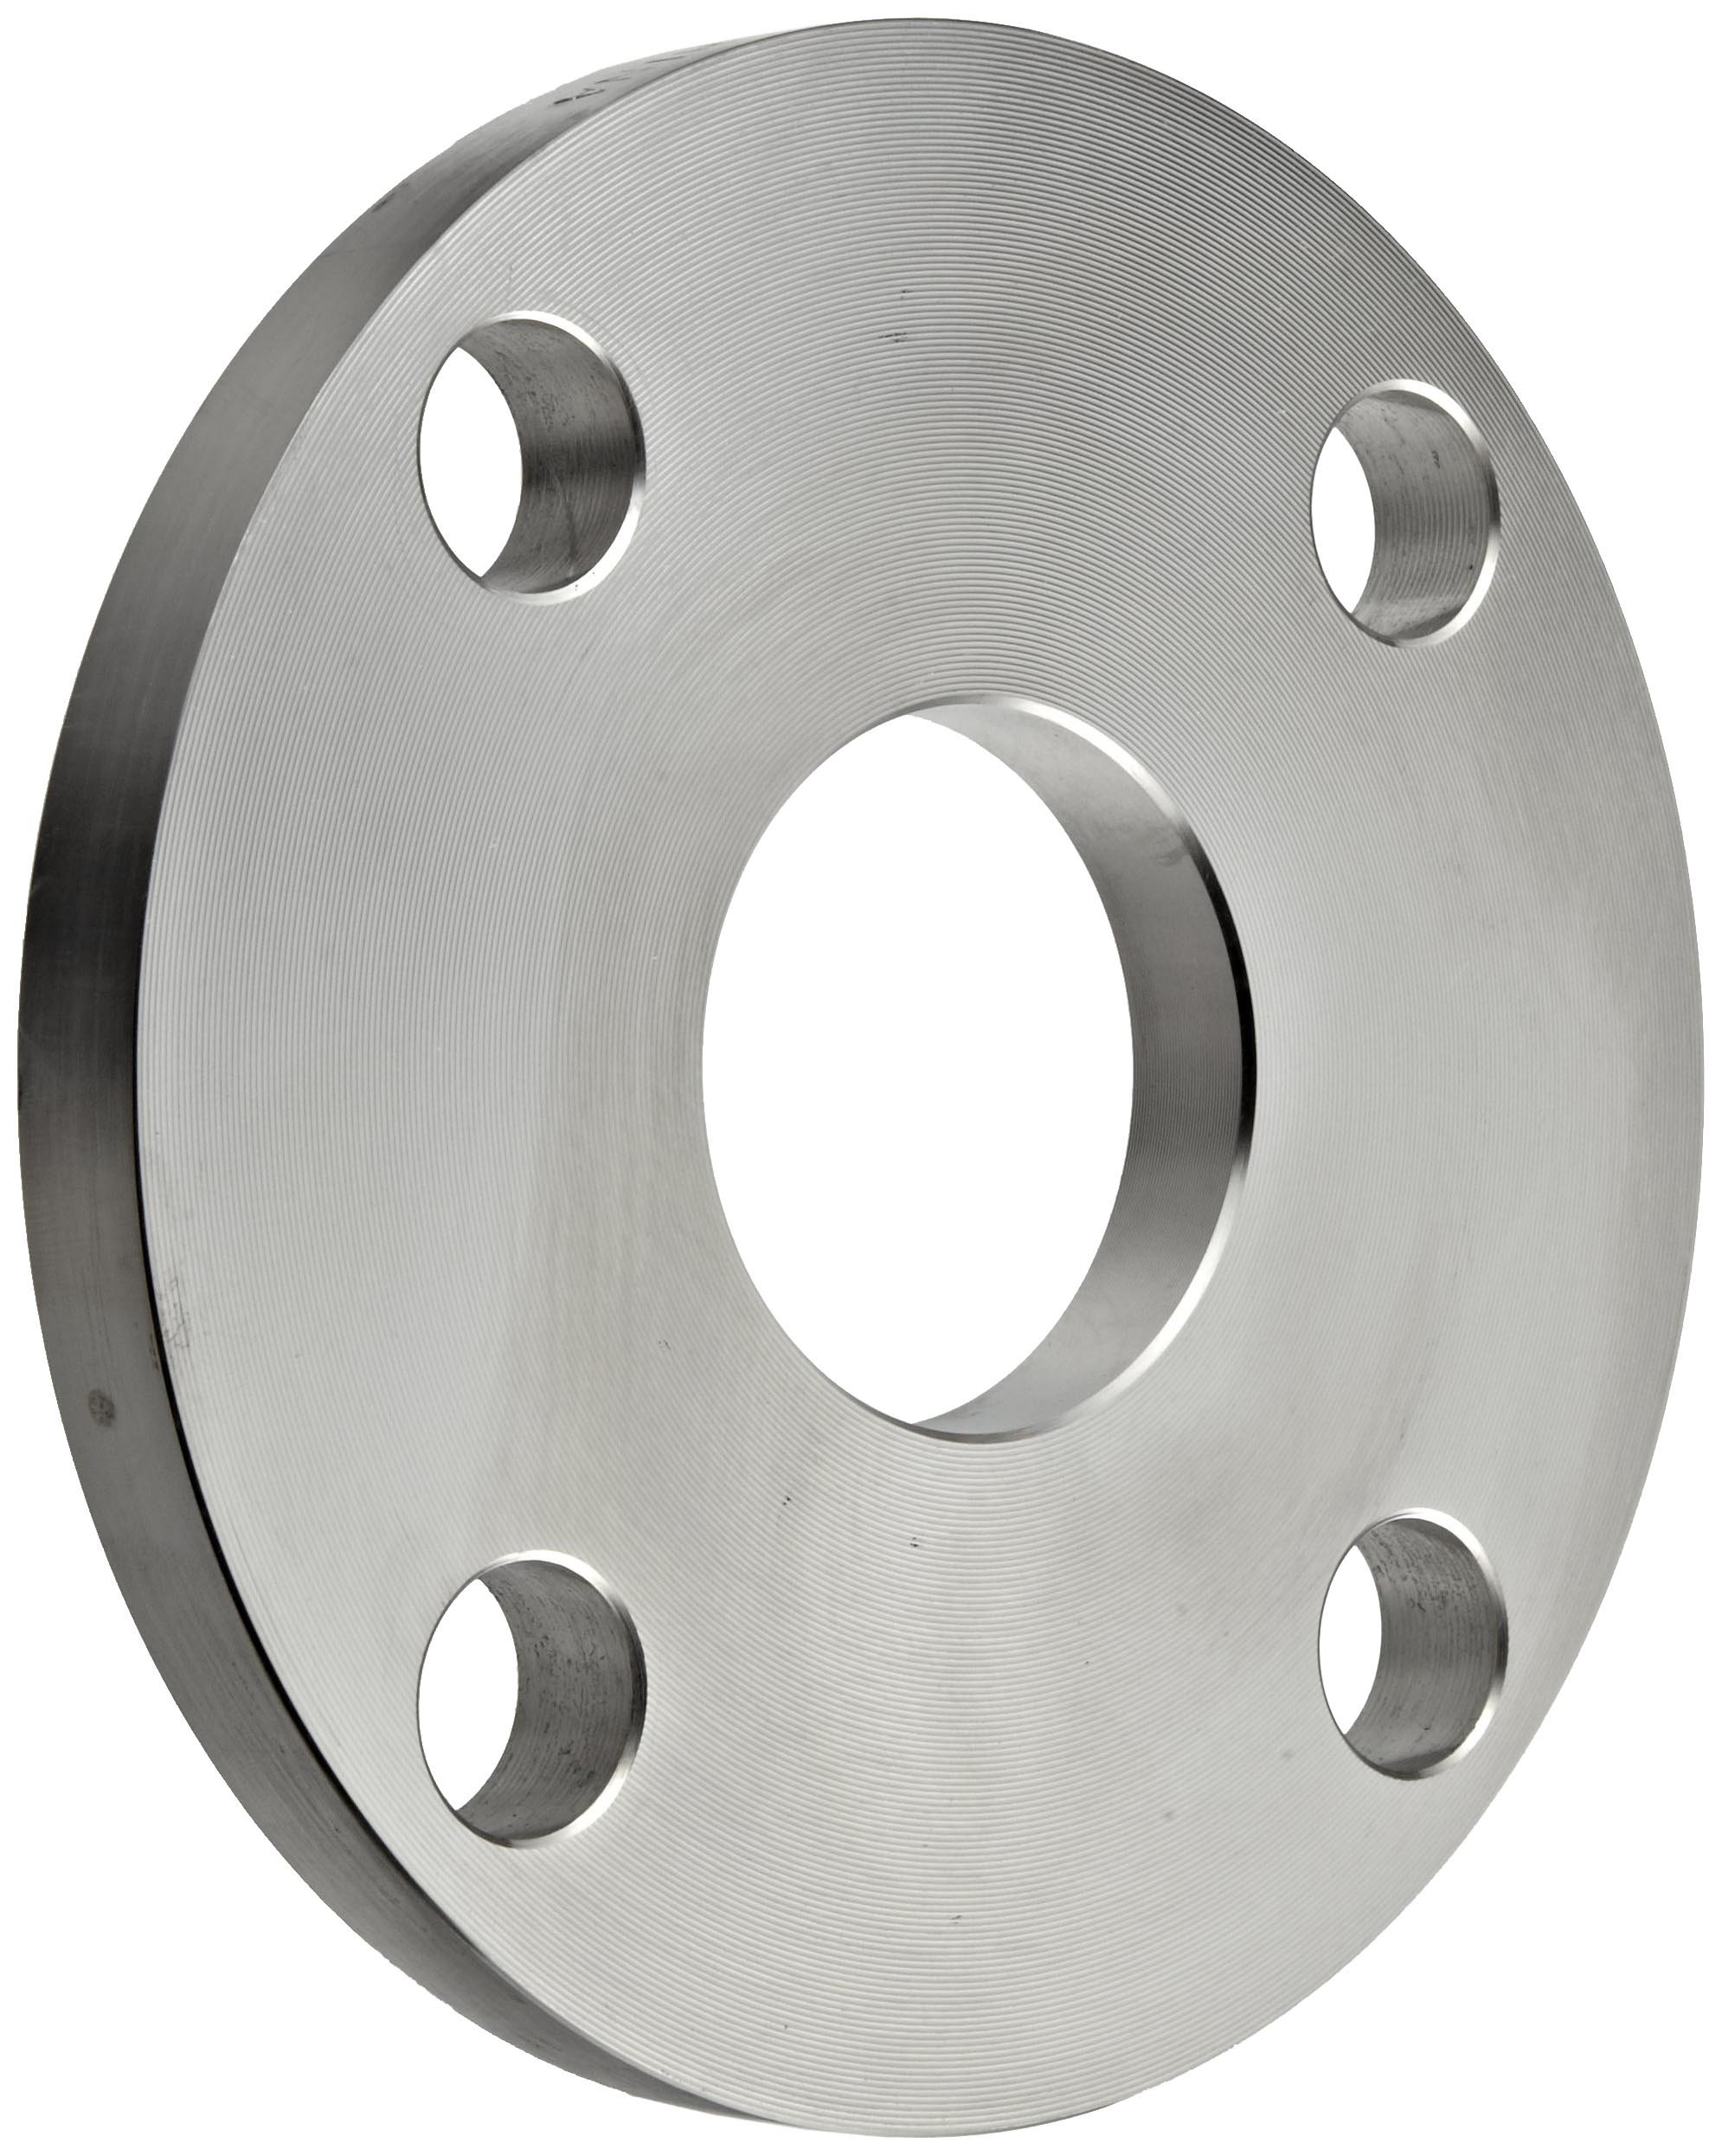 Stainless Steel 304/304L Plate Tube OD Pipe Fitting, Flange, Slip-On, Class 150, 12'' Pipe Size